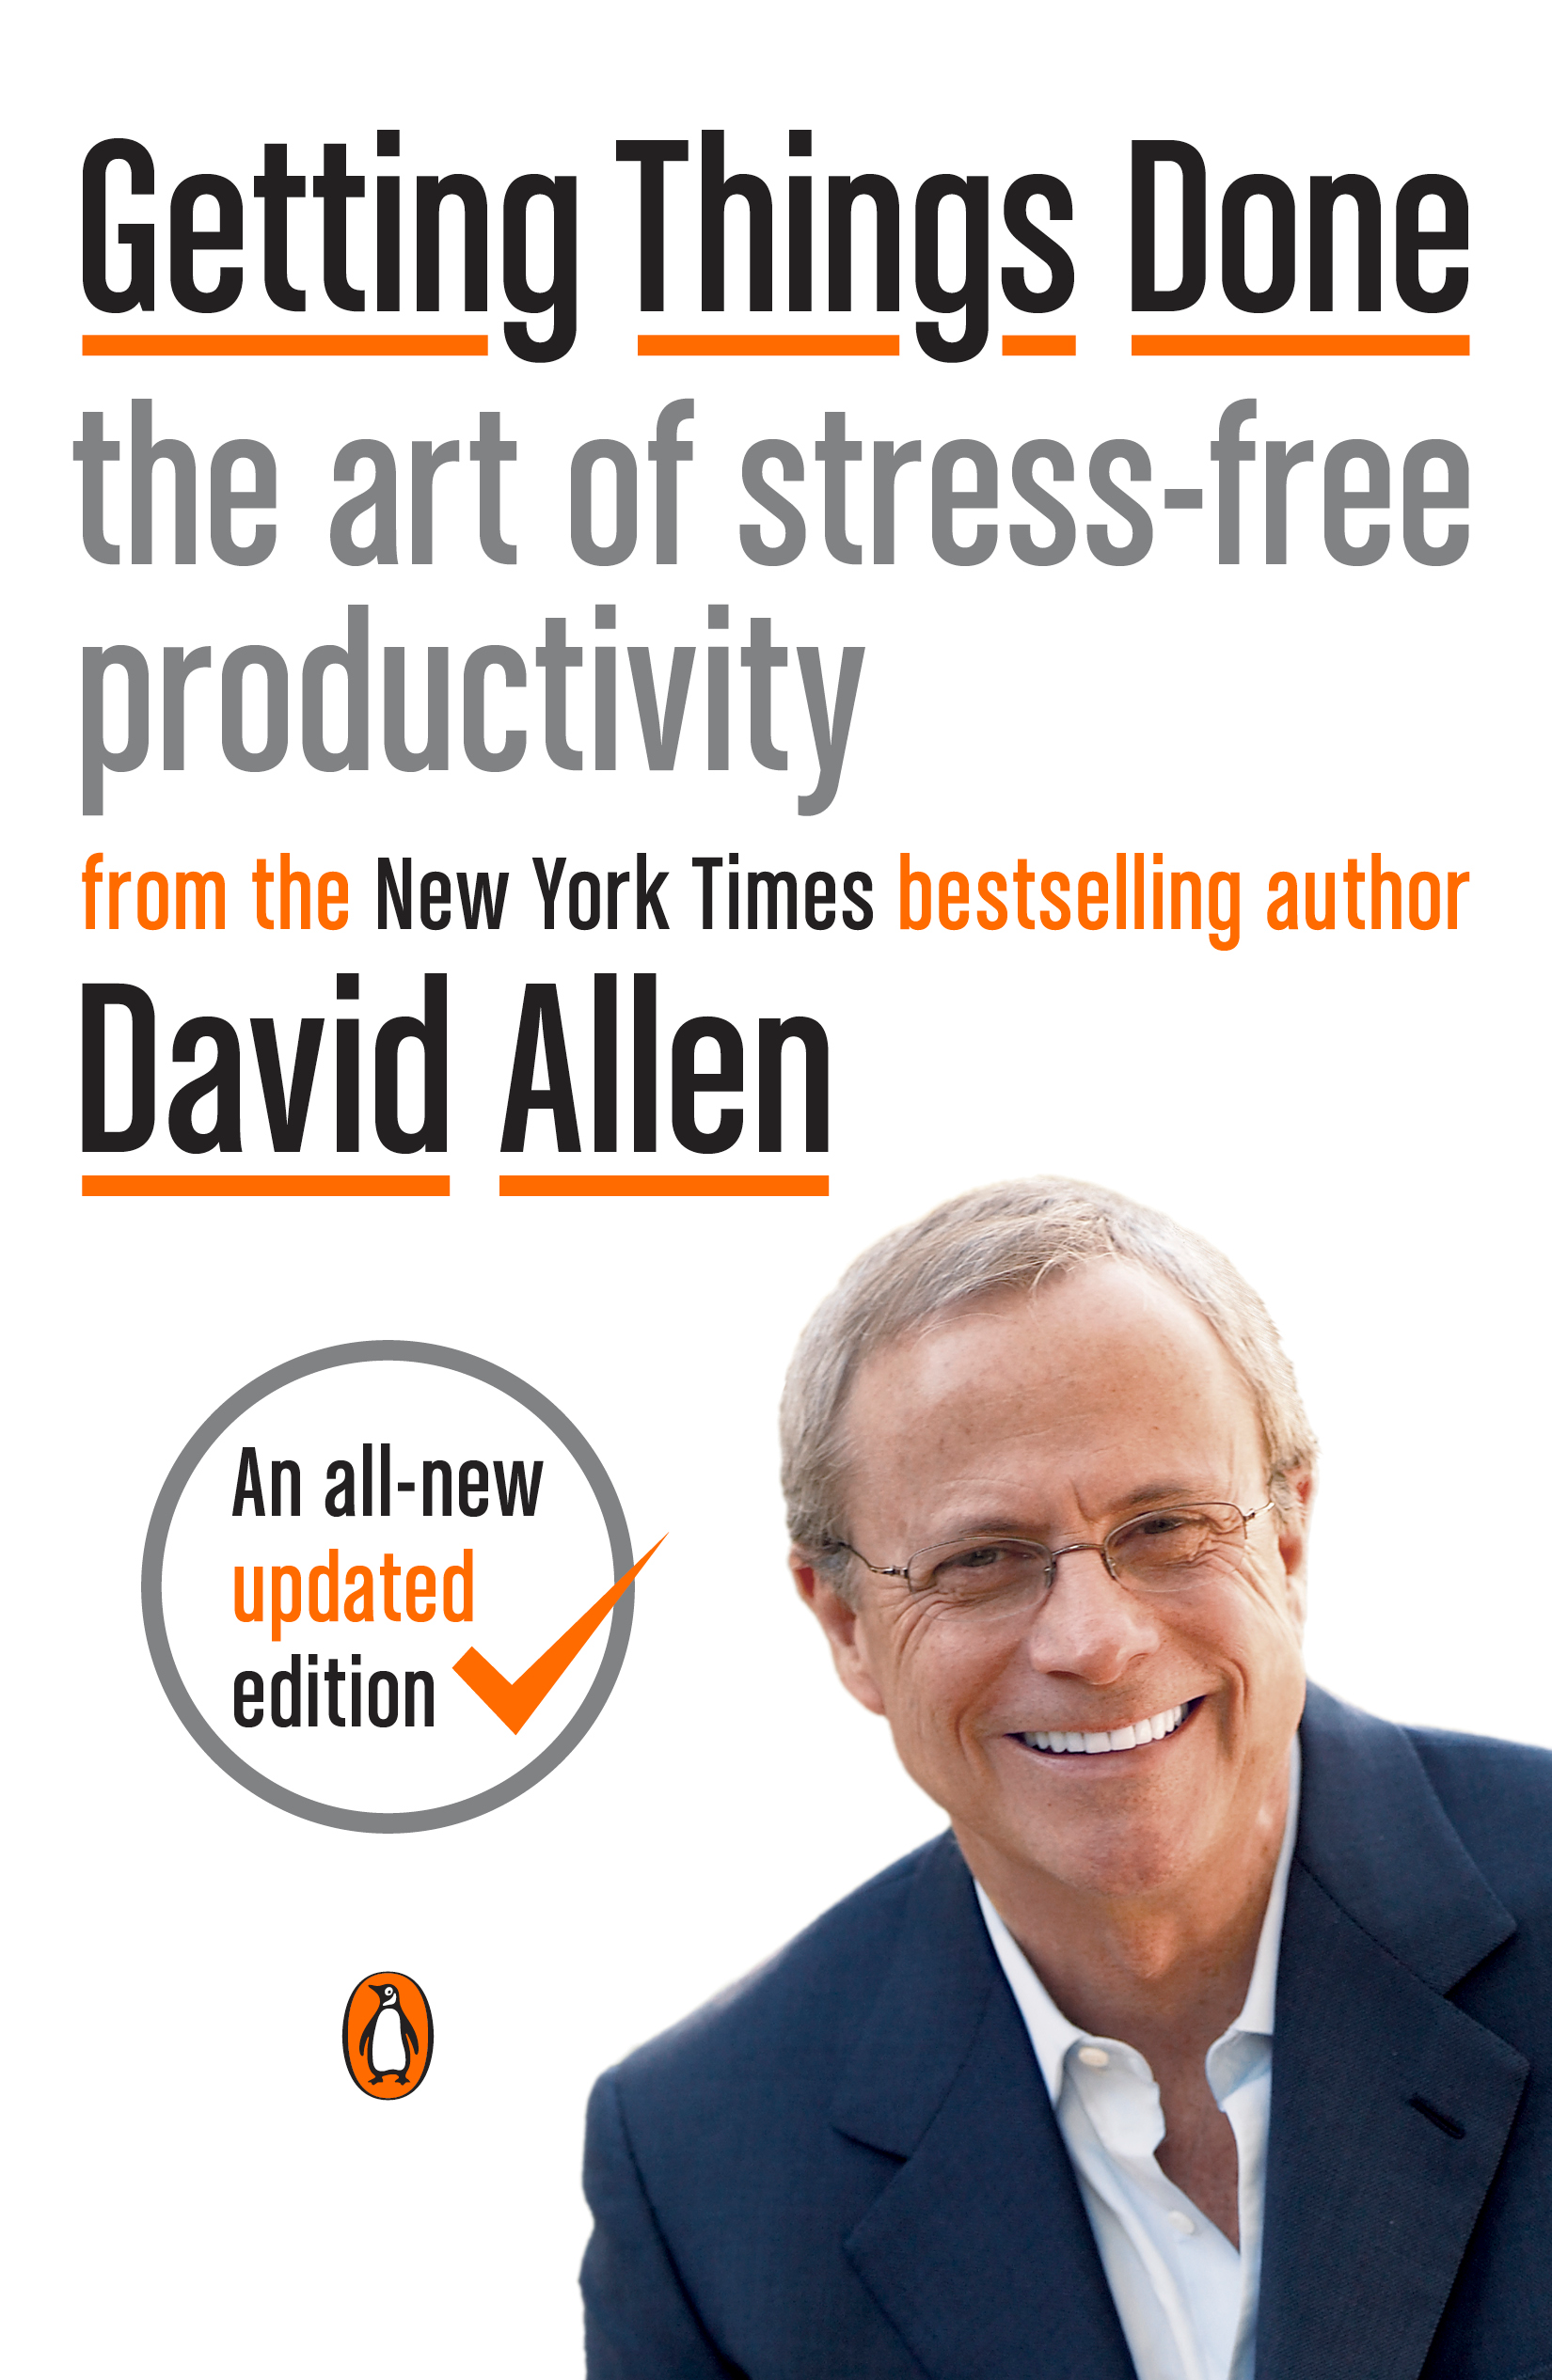 Getting Things Done The Art of Stress-Free Productivity  by David Allen